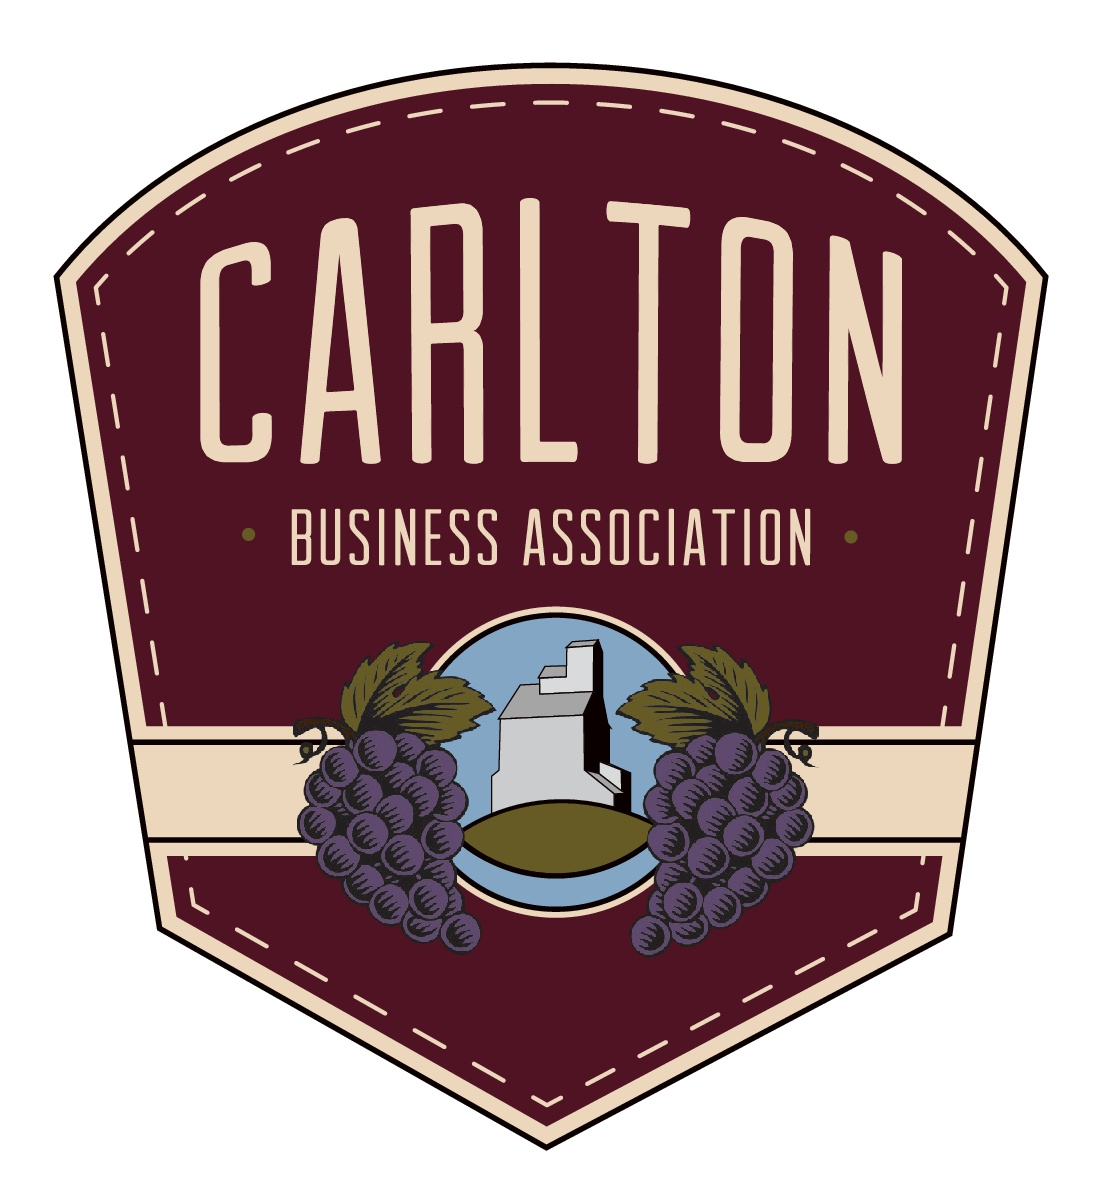 Carlton Business Association - Events